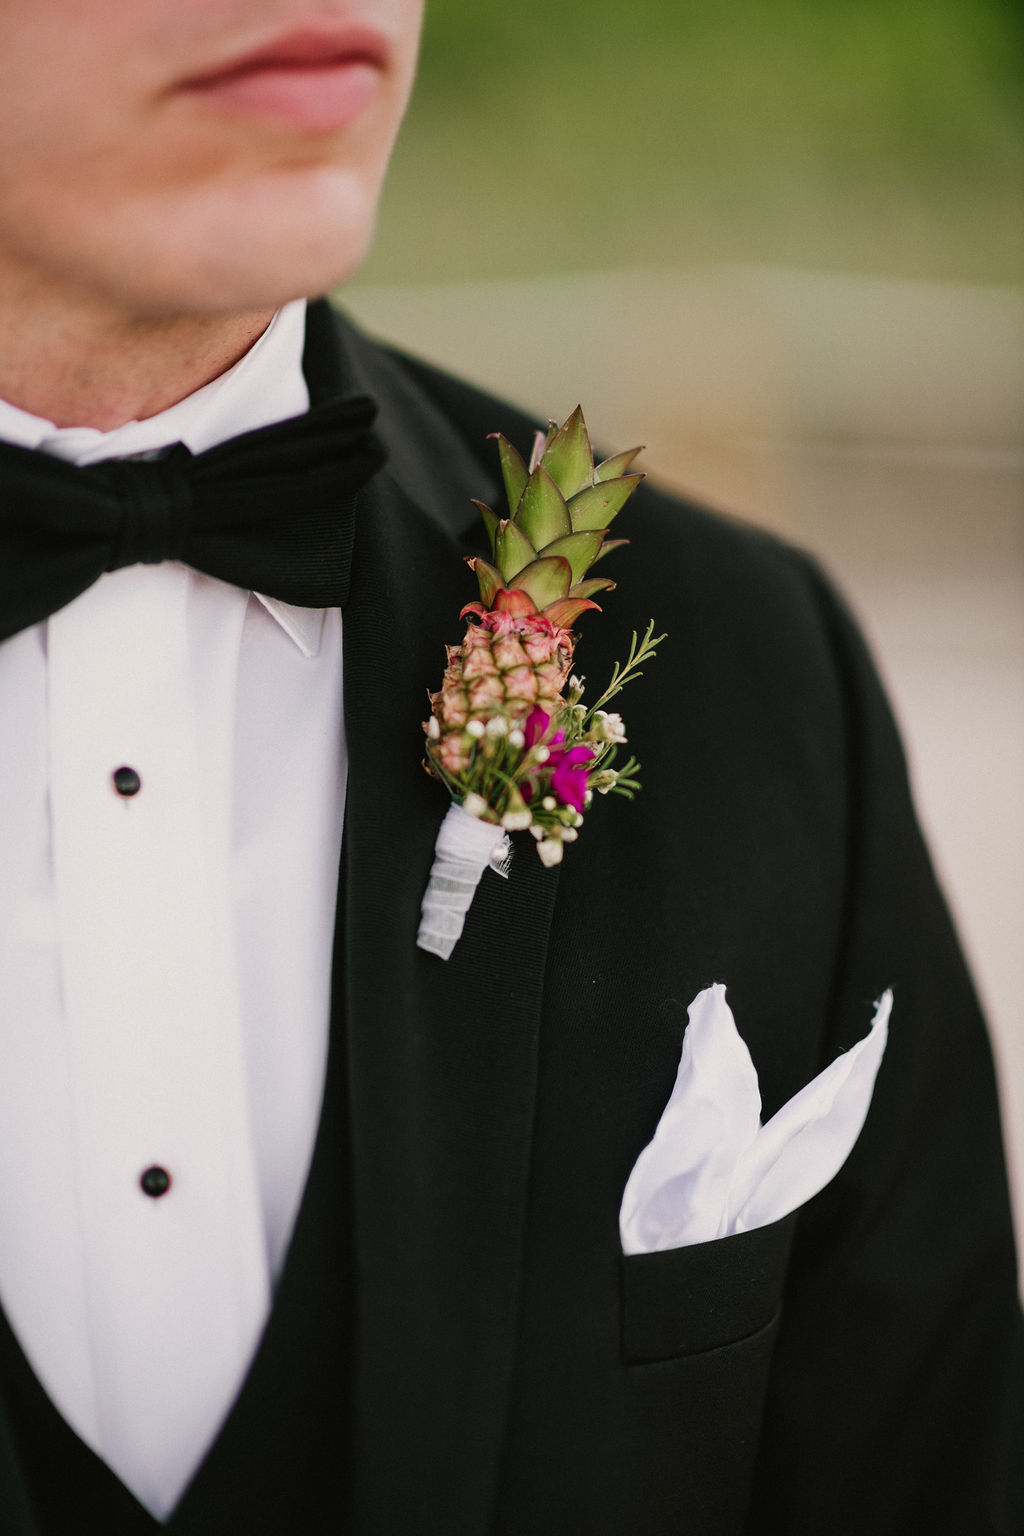 How awesome is this dwarf pineapple boutonniere!?